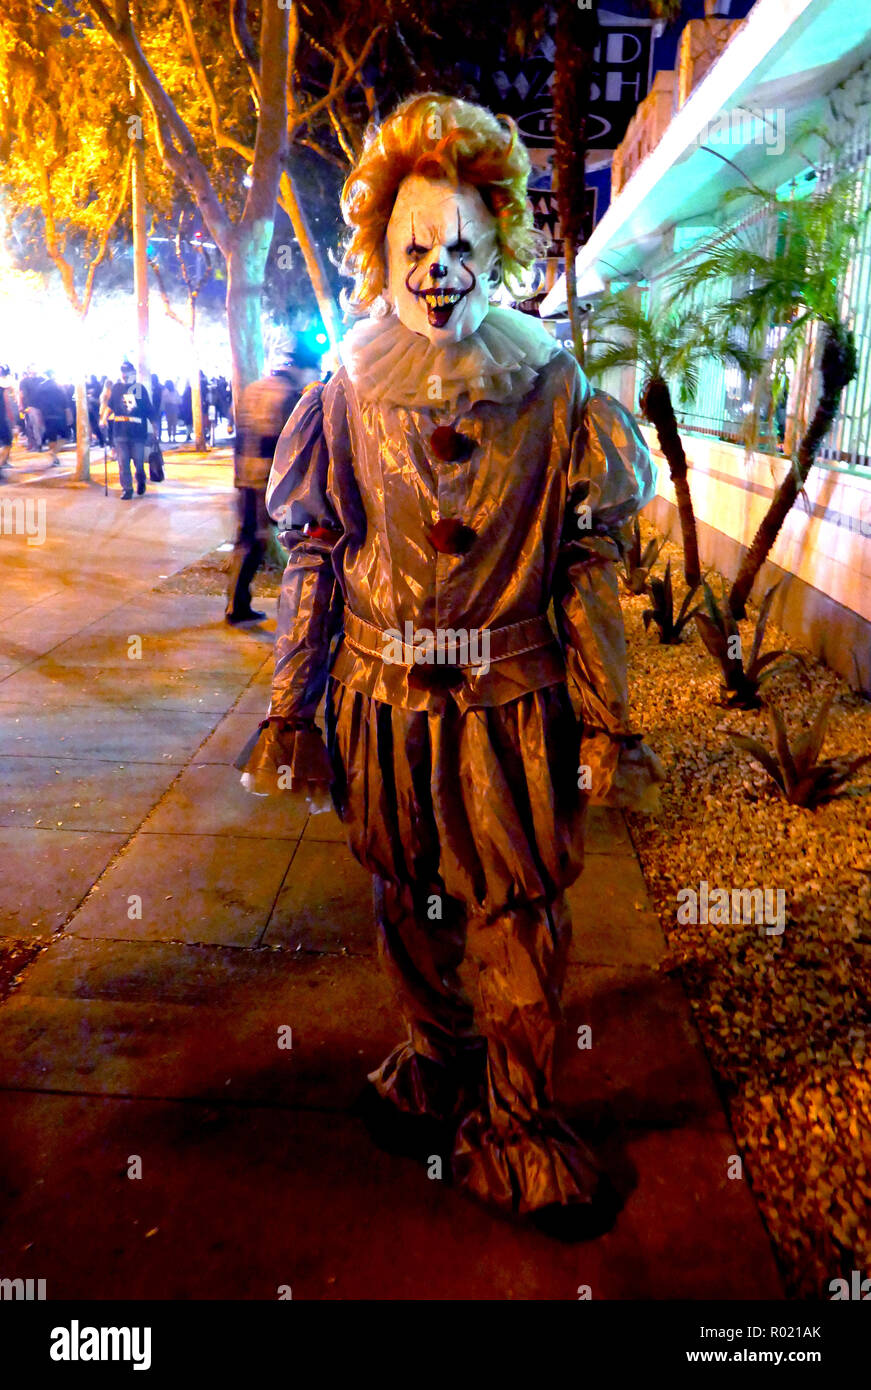 West Hollywood, USA. 31st Oct, 2018. WEST HOLLYWOOD, CA - OCTOBER 31: A general view of atmosphere of Pennywise on October 31, 2018 at West Hollywood Halloween Caranval in West Hollywood, California. Credit: Barry King/Alamy Live News - Stock Image